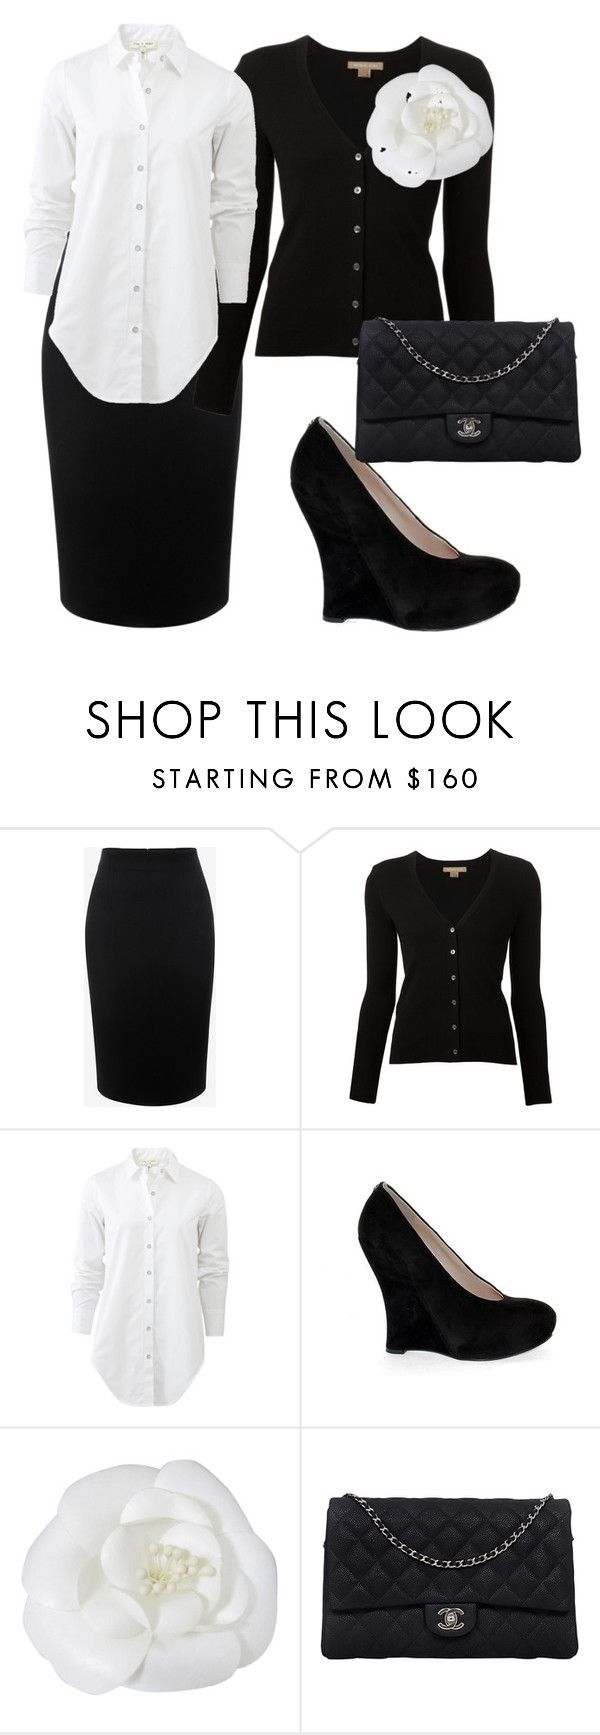 """""""Professional Teacher Outfit"""" by samantha-griego on Polyvore featuring Alexander McQueen, Michael Kors, rag & bone, GUESS and Chanel"""